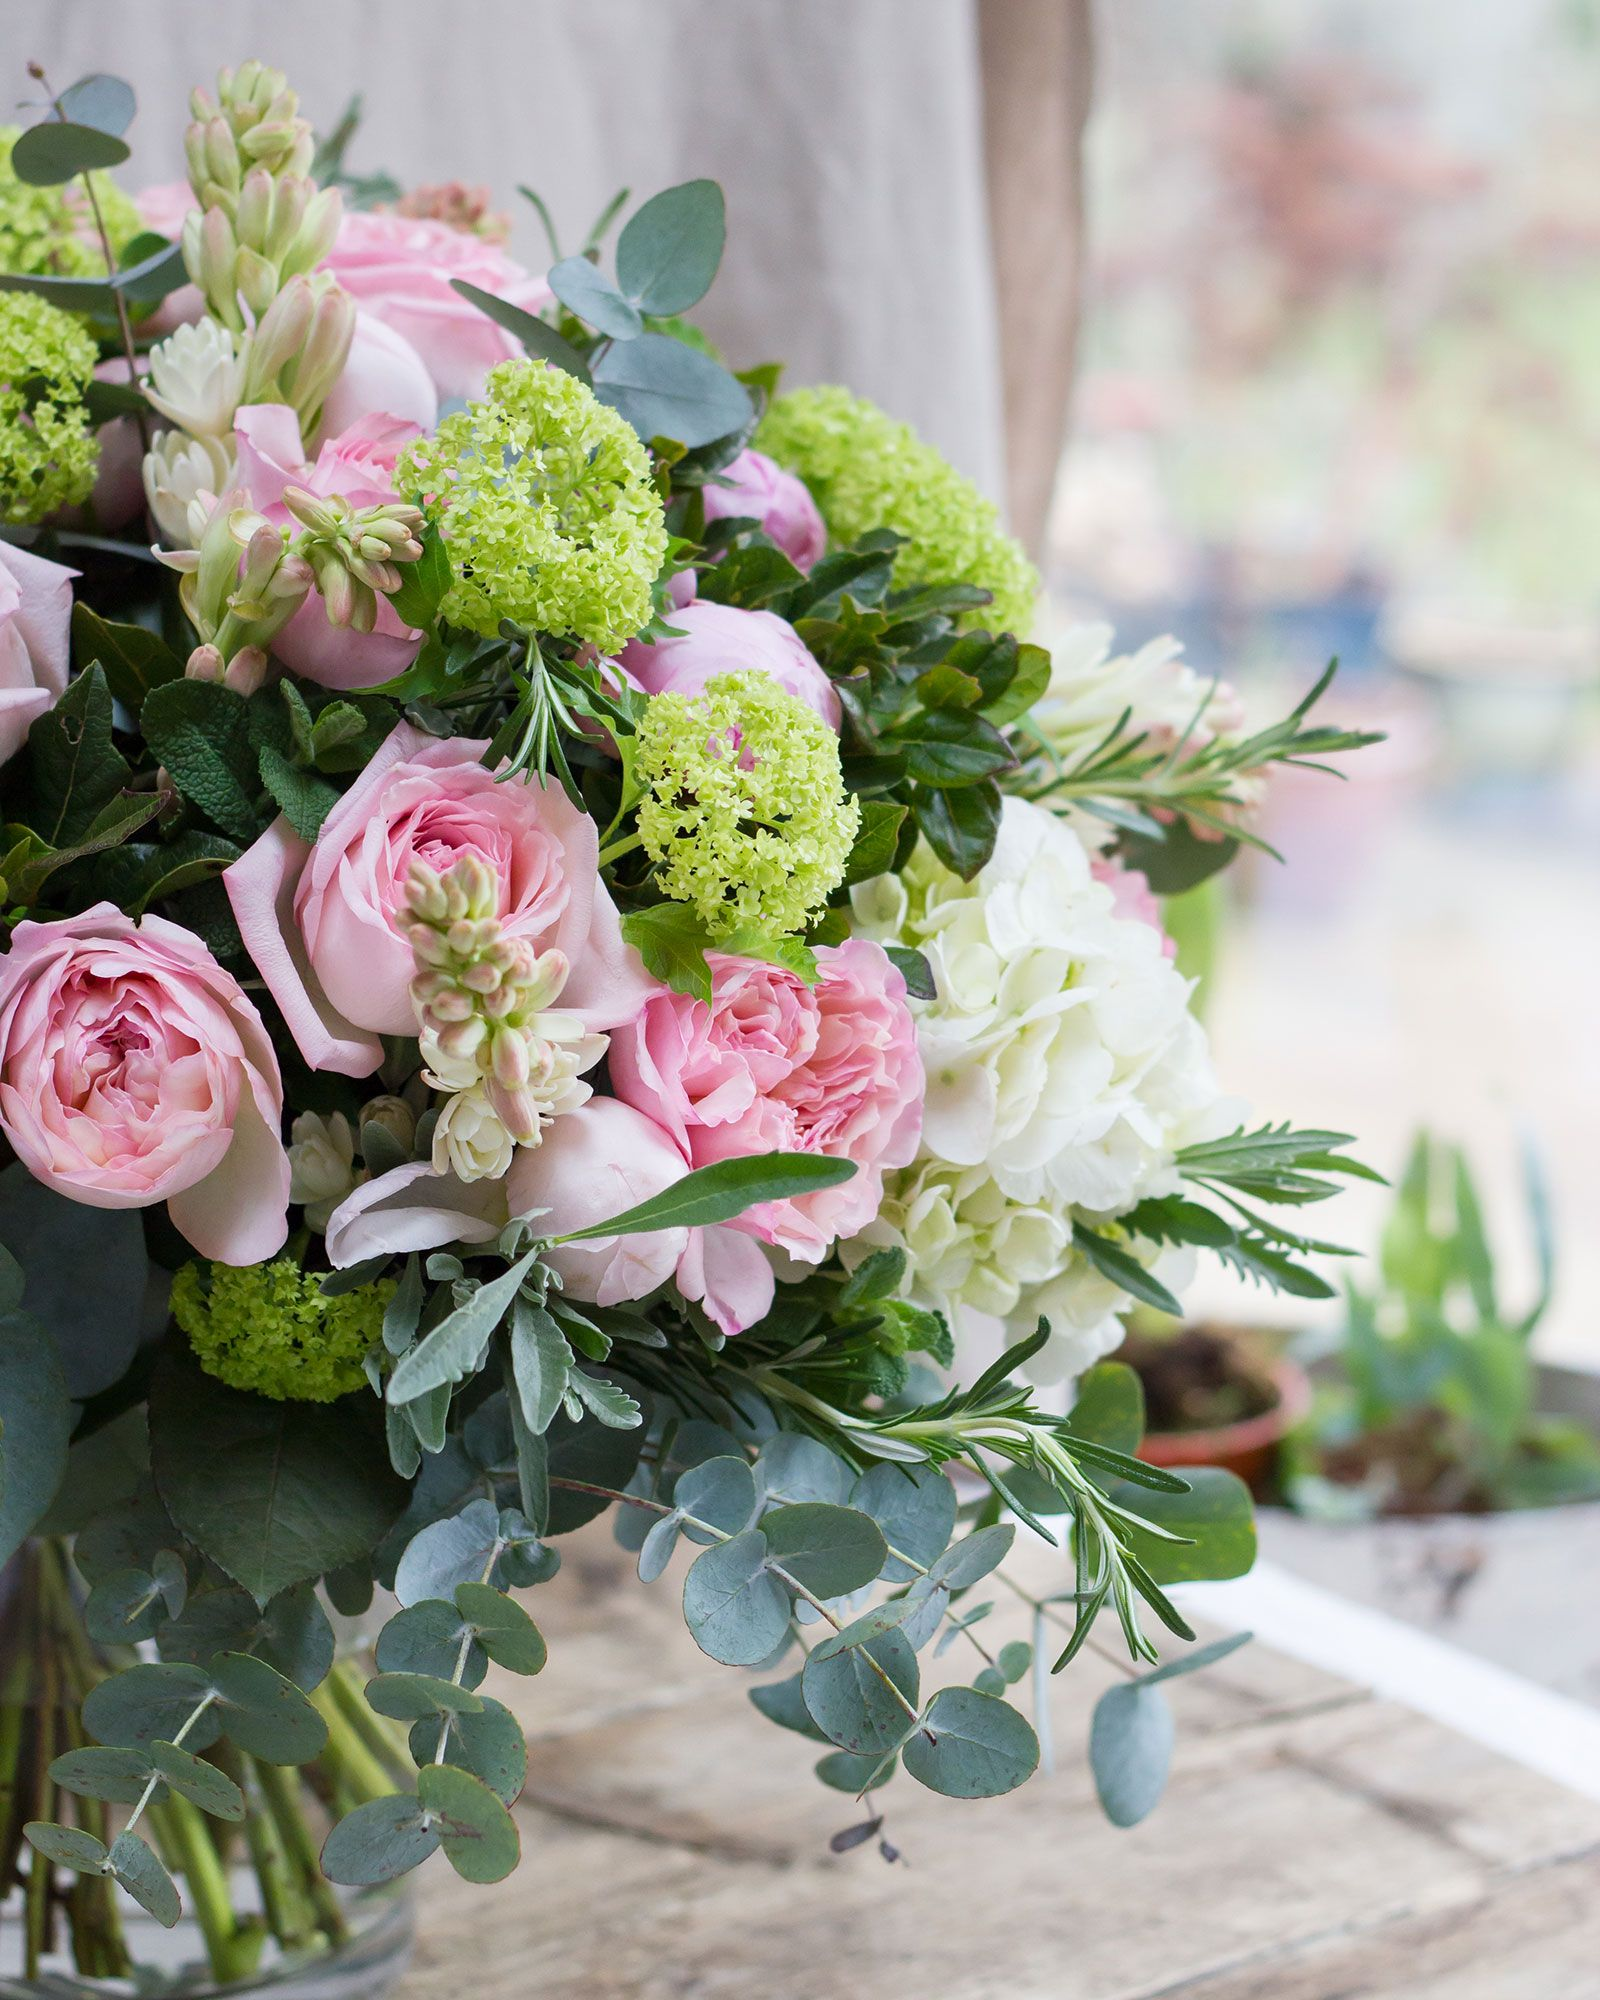 """<p>'Of all of the senses, smell is believed to be most strongly linked to emotion, so choosing flowers and foliage with a beautiful scentis imperative. For example, the fragrance of a garden roseoften brings back so many memories of growing up. Roses are a popular choice for Mother's Day and I would always suggest picking garden roses with scent (lots of roses have been genetically modified to have their scent gene removed).</p><p>'Princess Charlene and Prince Jardinier are two of my personal favourites that we grow on our Fairtrade farm at this time of year – enjoying how their scent develops and the way they open in the vase is so beautiful, almost ethereal.'</p><p><span class=""""redactor-invisible-space"""" data-verified=""""redactor"""" data-redactor-tag=""""span"""" data-redactor-class=""""redactor-invisible-space""""></span></p>"""